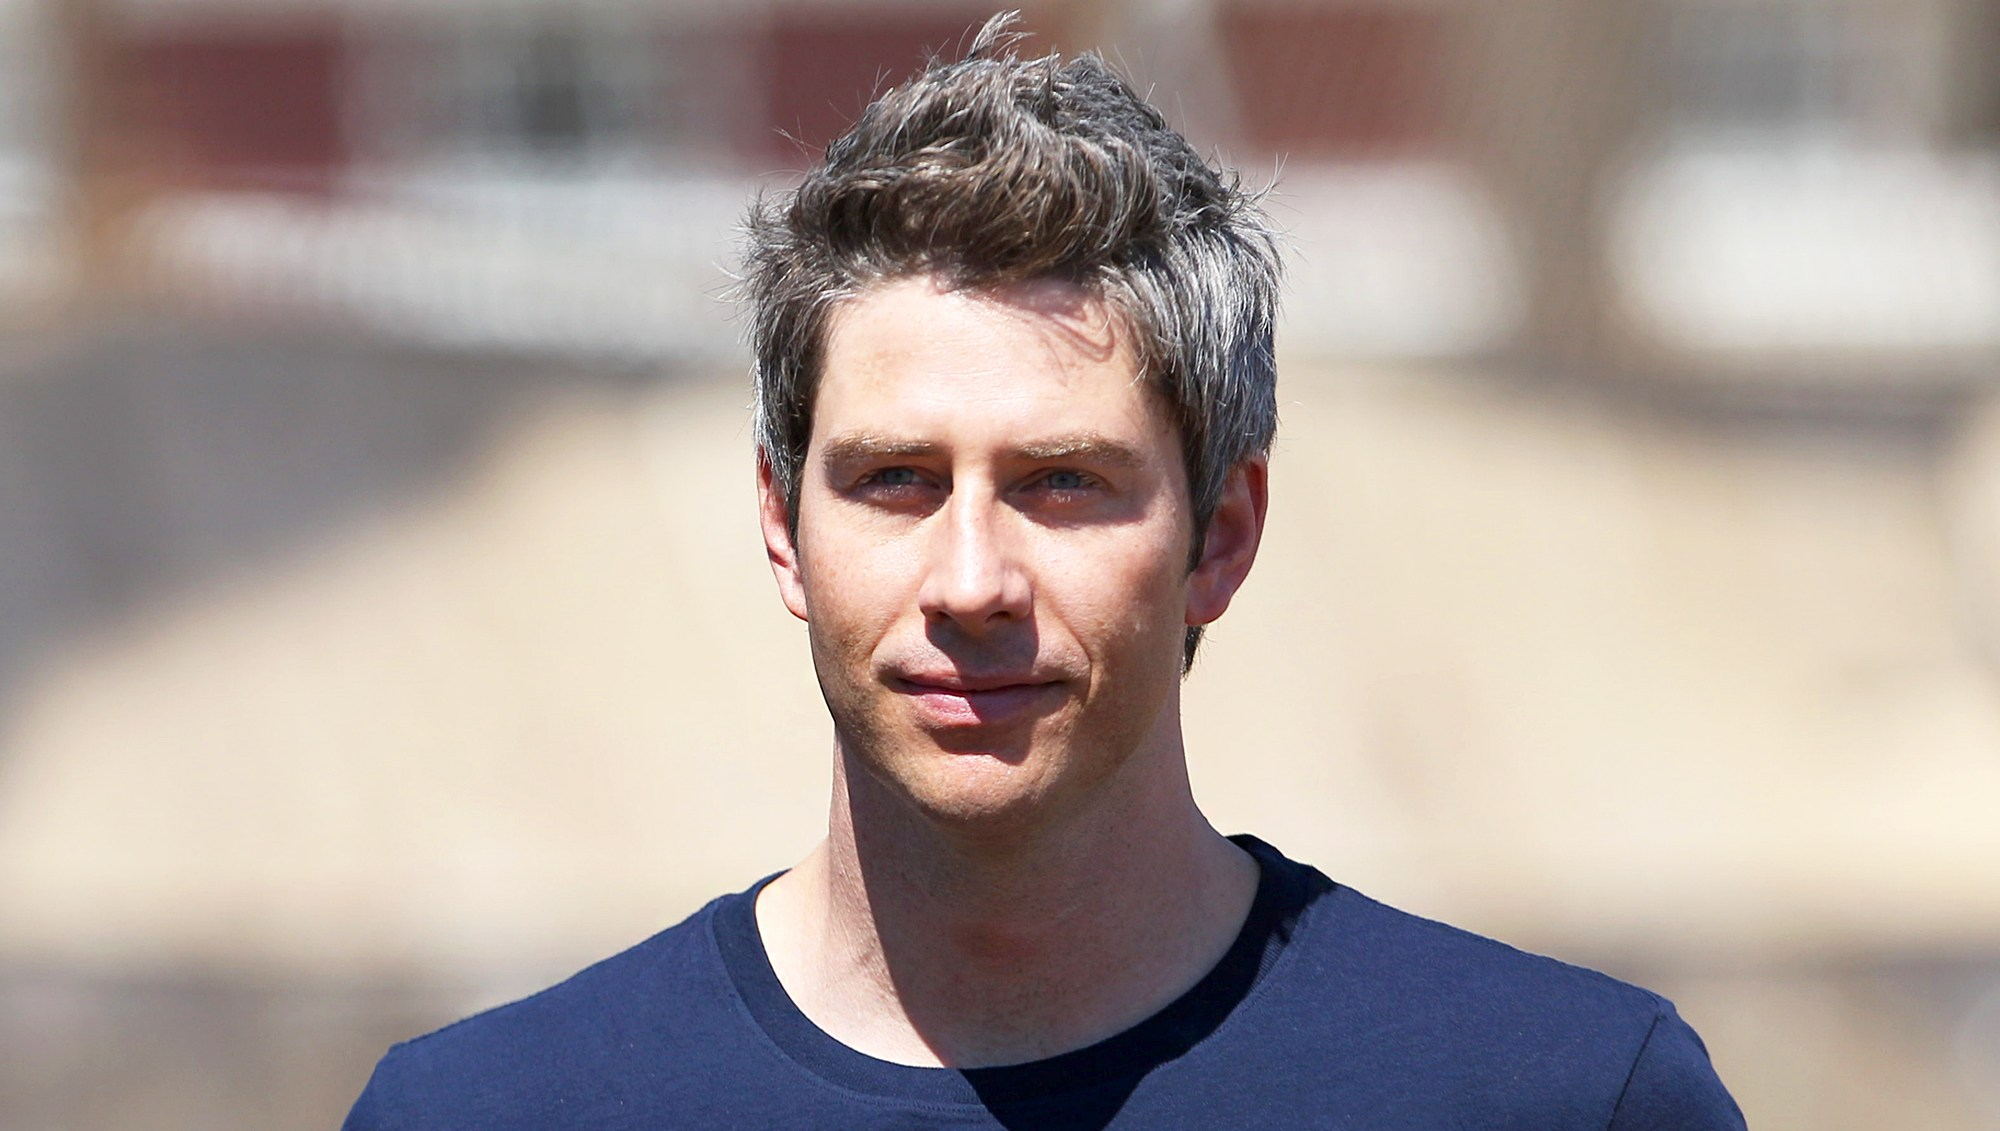 Arie Luyendyk Jr. on 'The Bachelor'